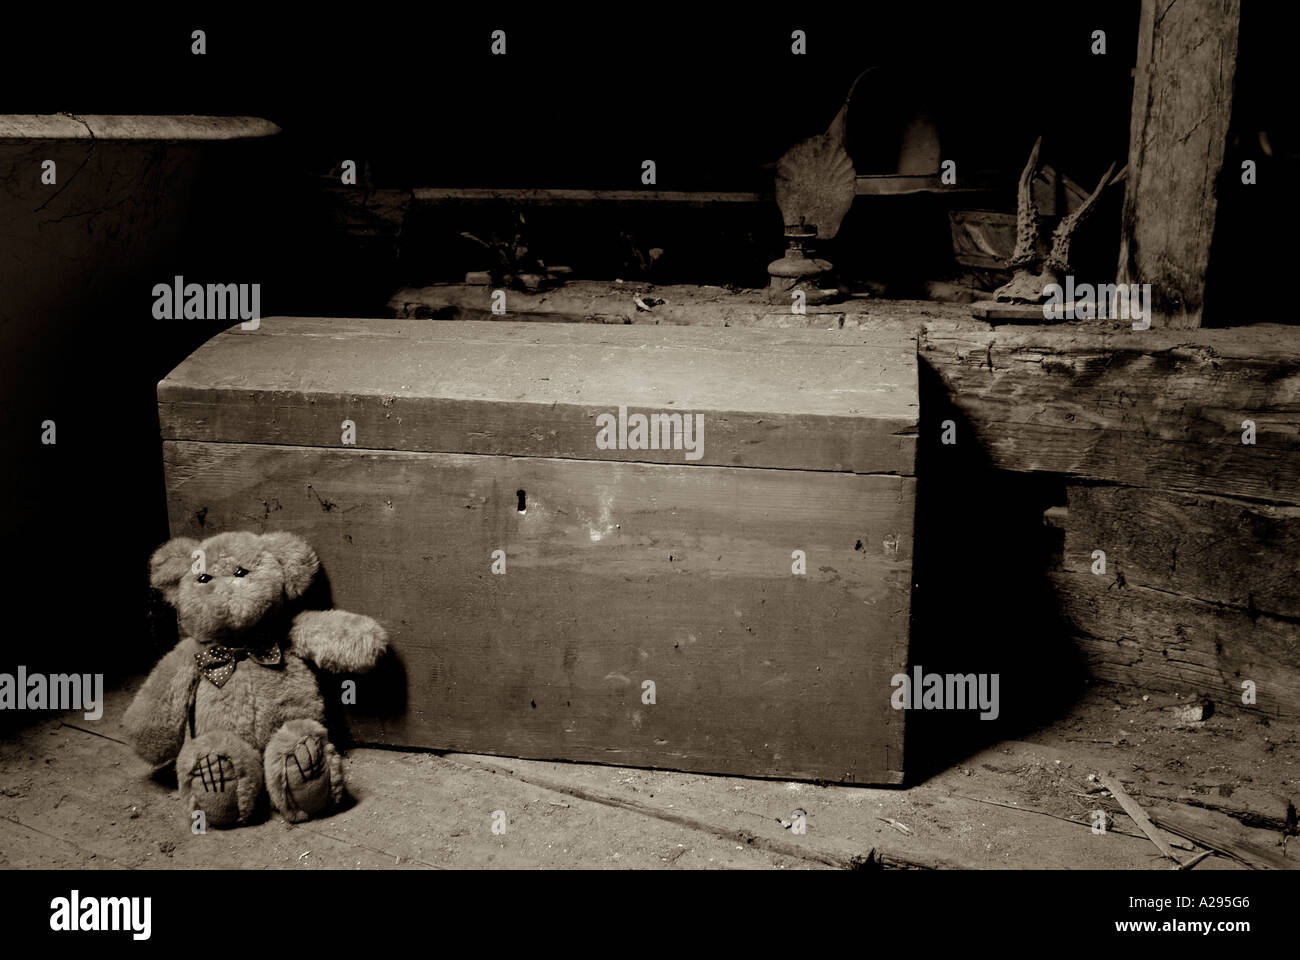 Teddy Bear and an Old Toy Chest in the Dusty Attic Space of a House - Stock Image